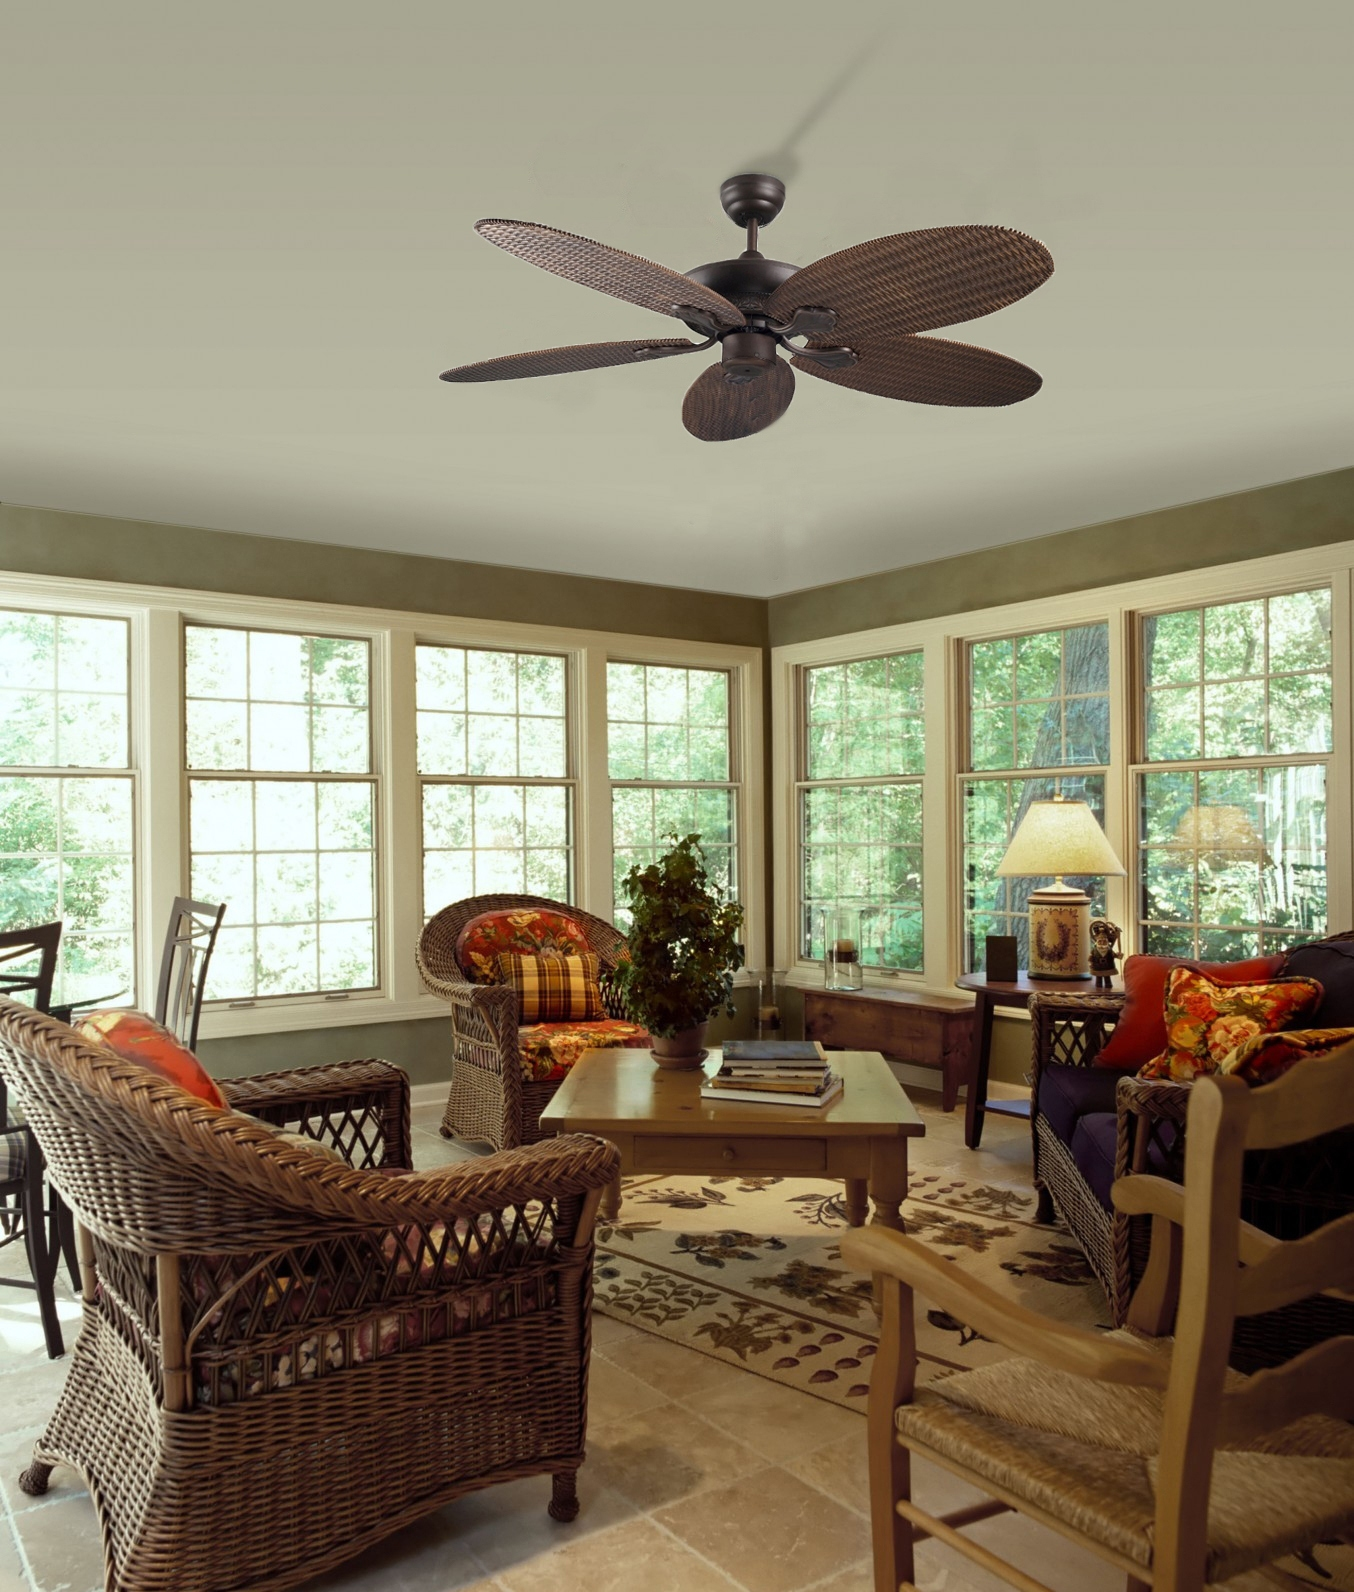 Rattan Style Ceiling Fan With Pull Cord And No Light Feature